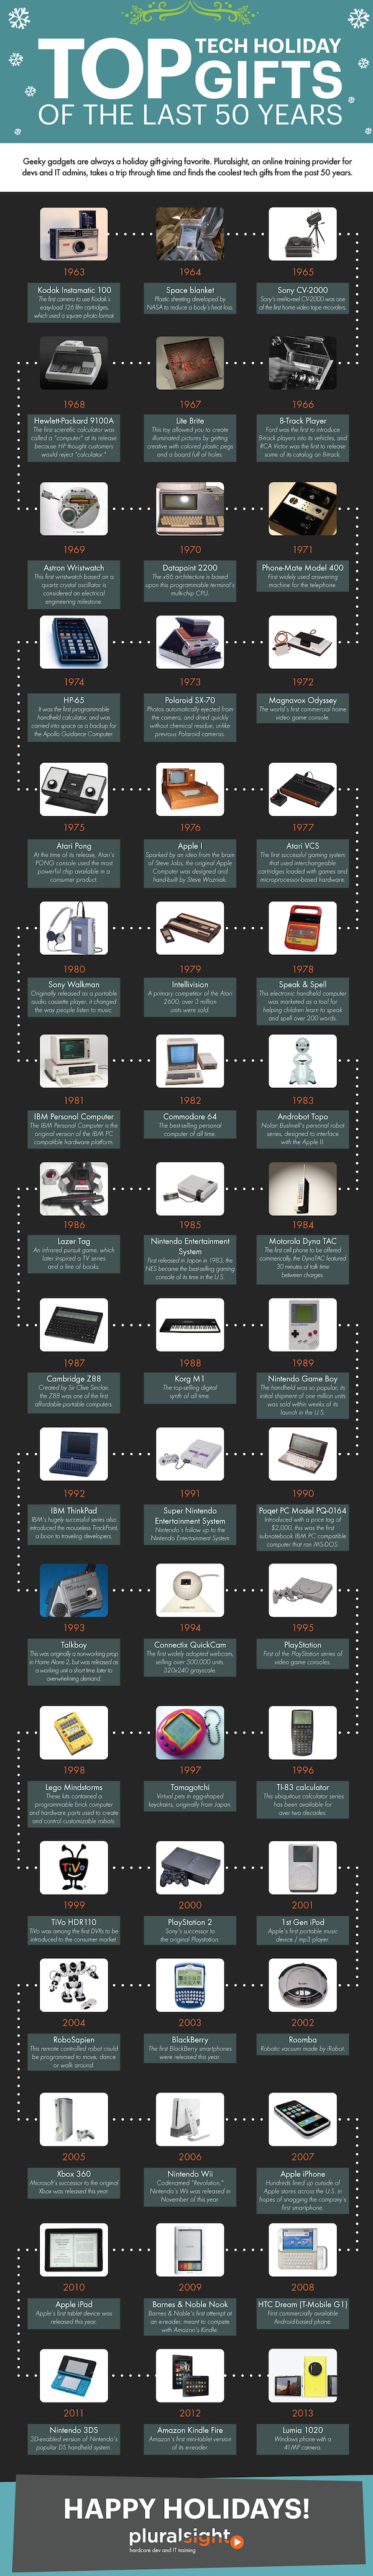 PluralSight-Top-Tech-Holiday-Gifts infografika 2013